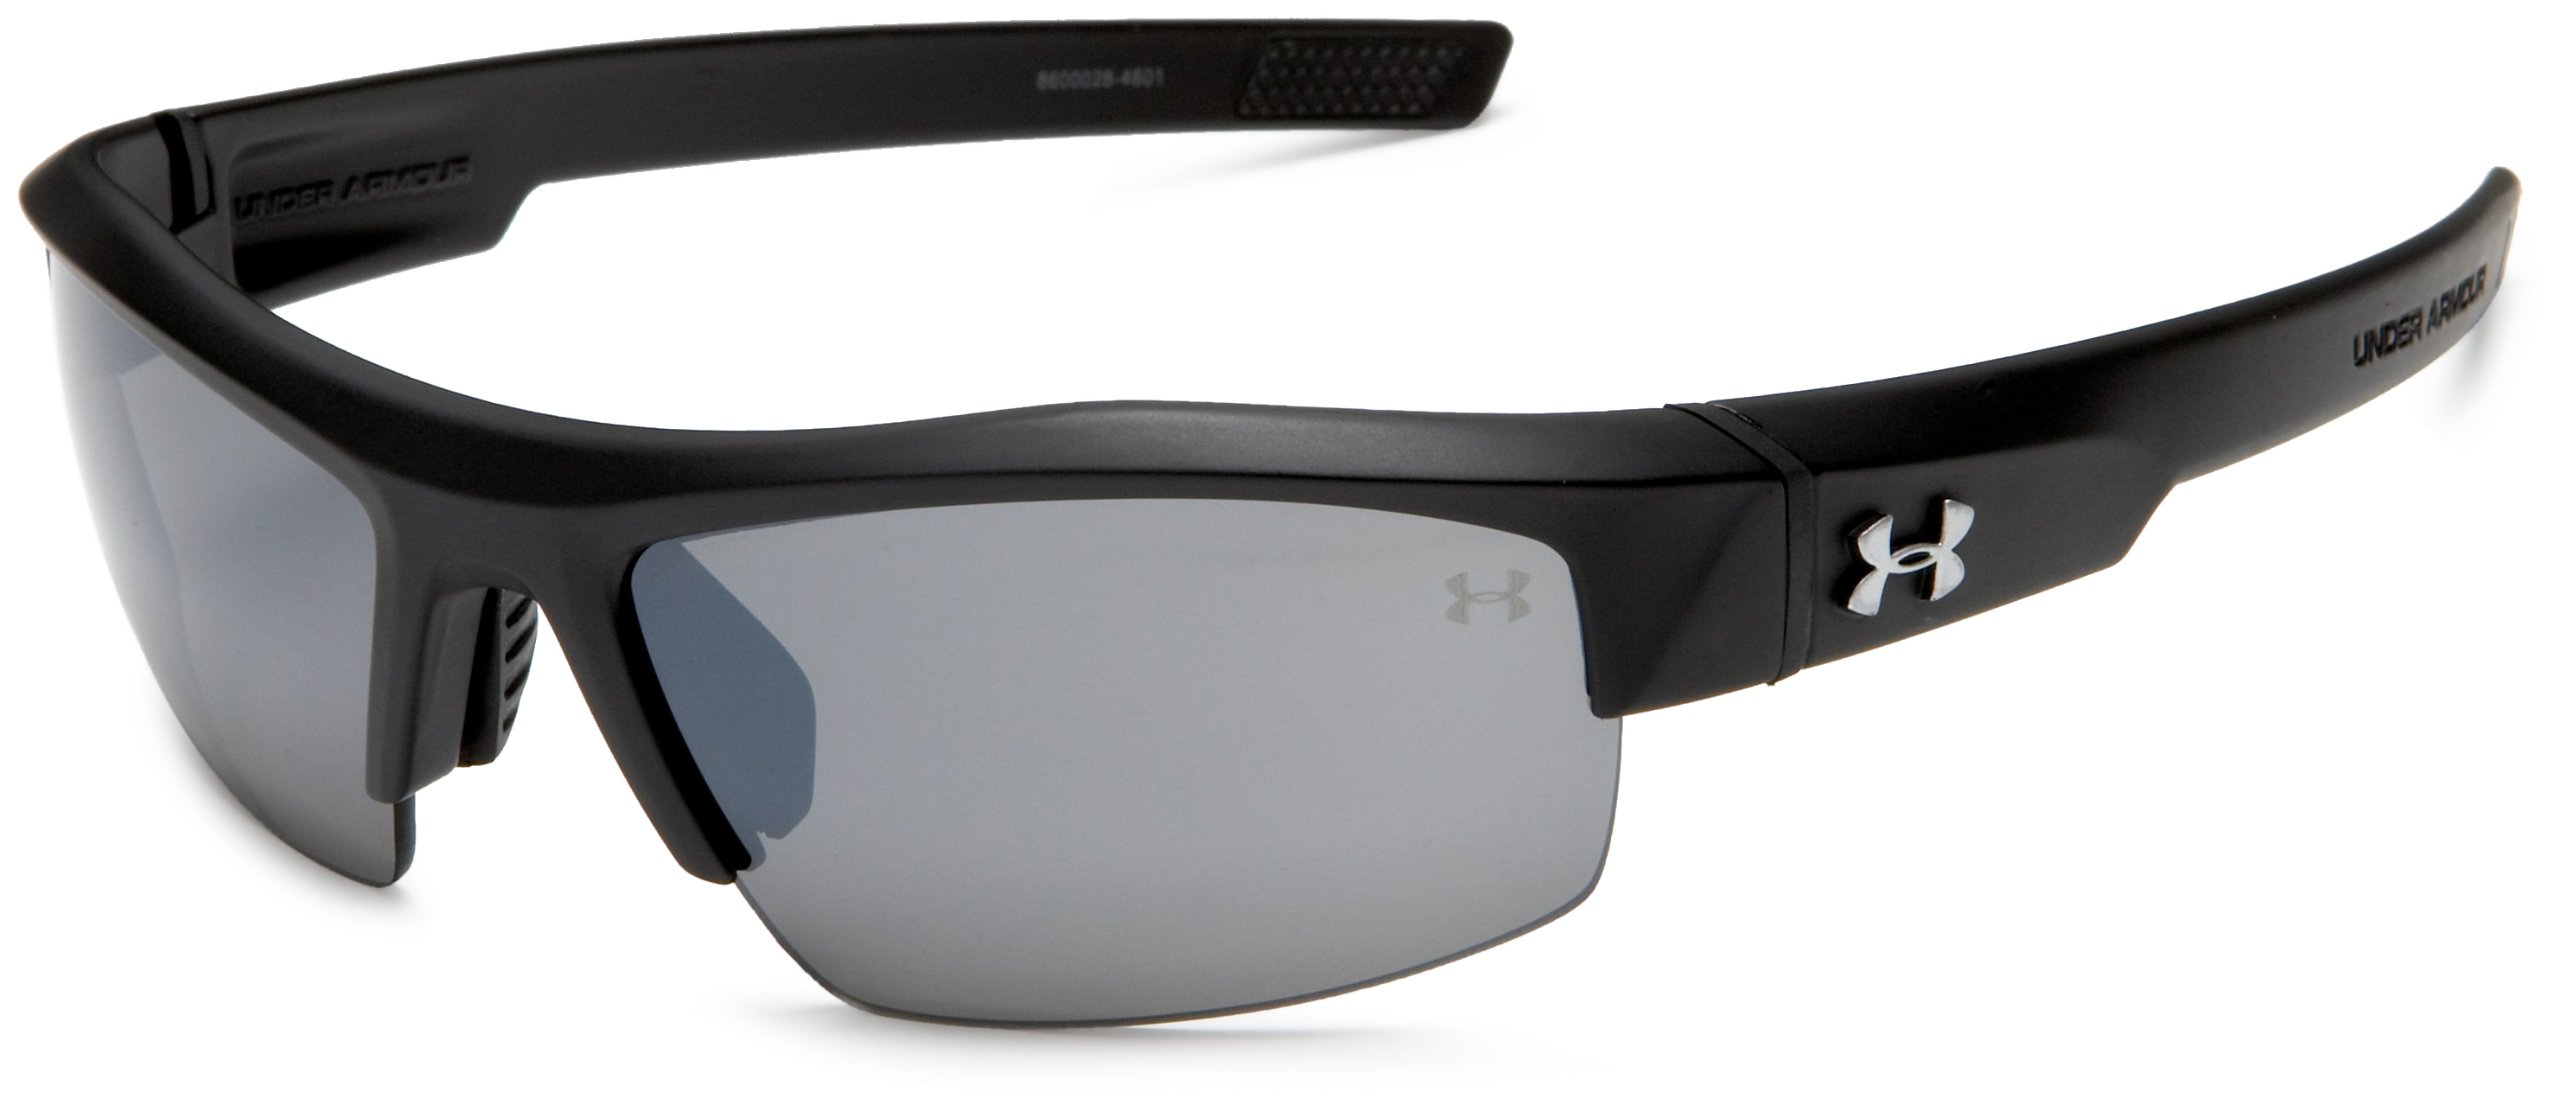 7d92537a63e See all customer reviews · Under Armour Men s Igniter Sunglass product image